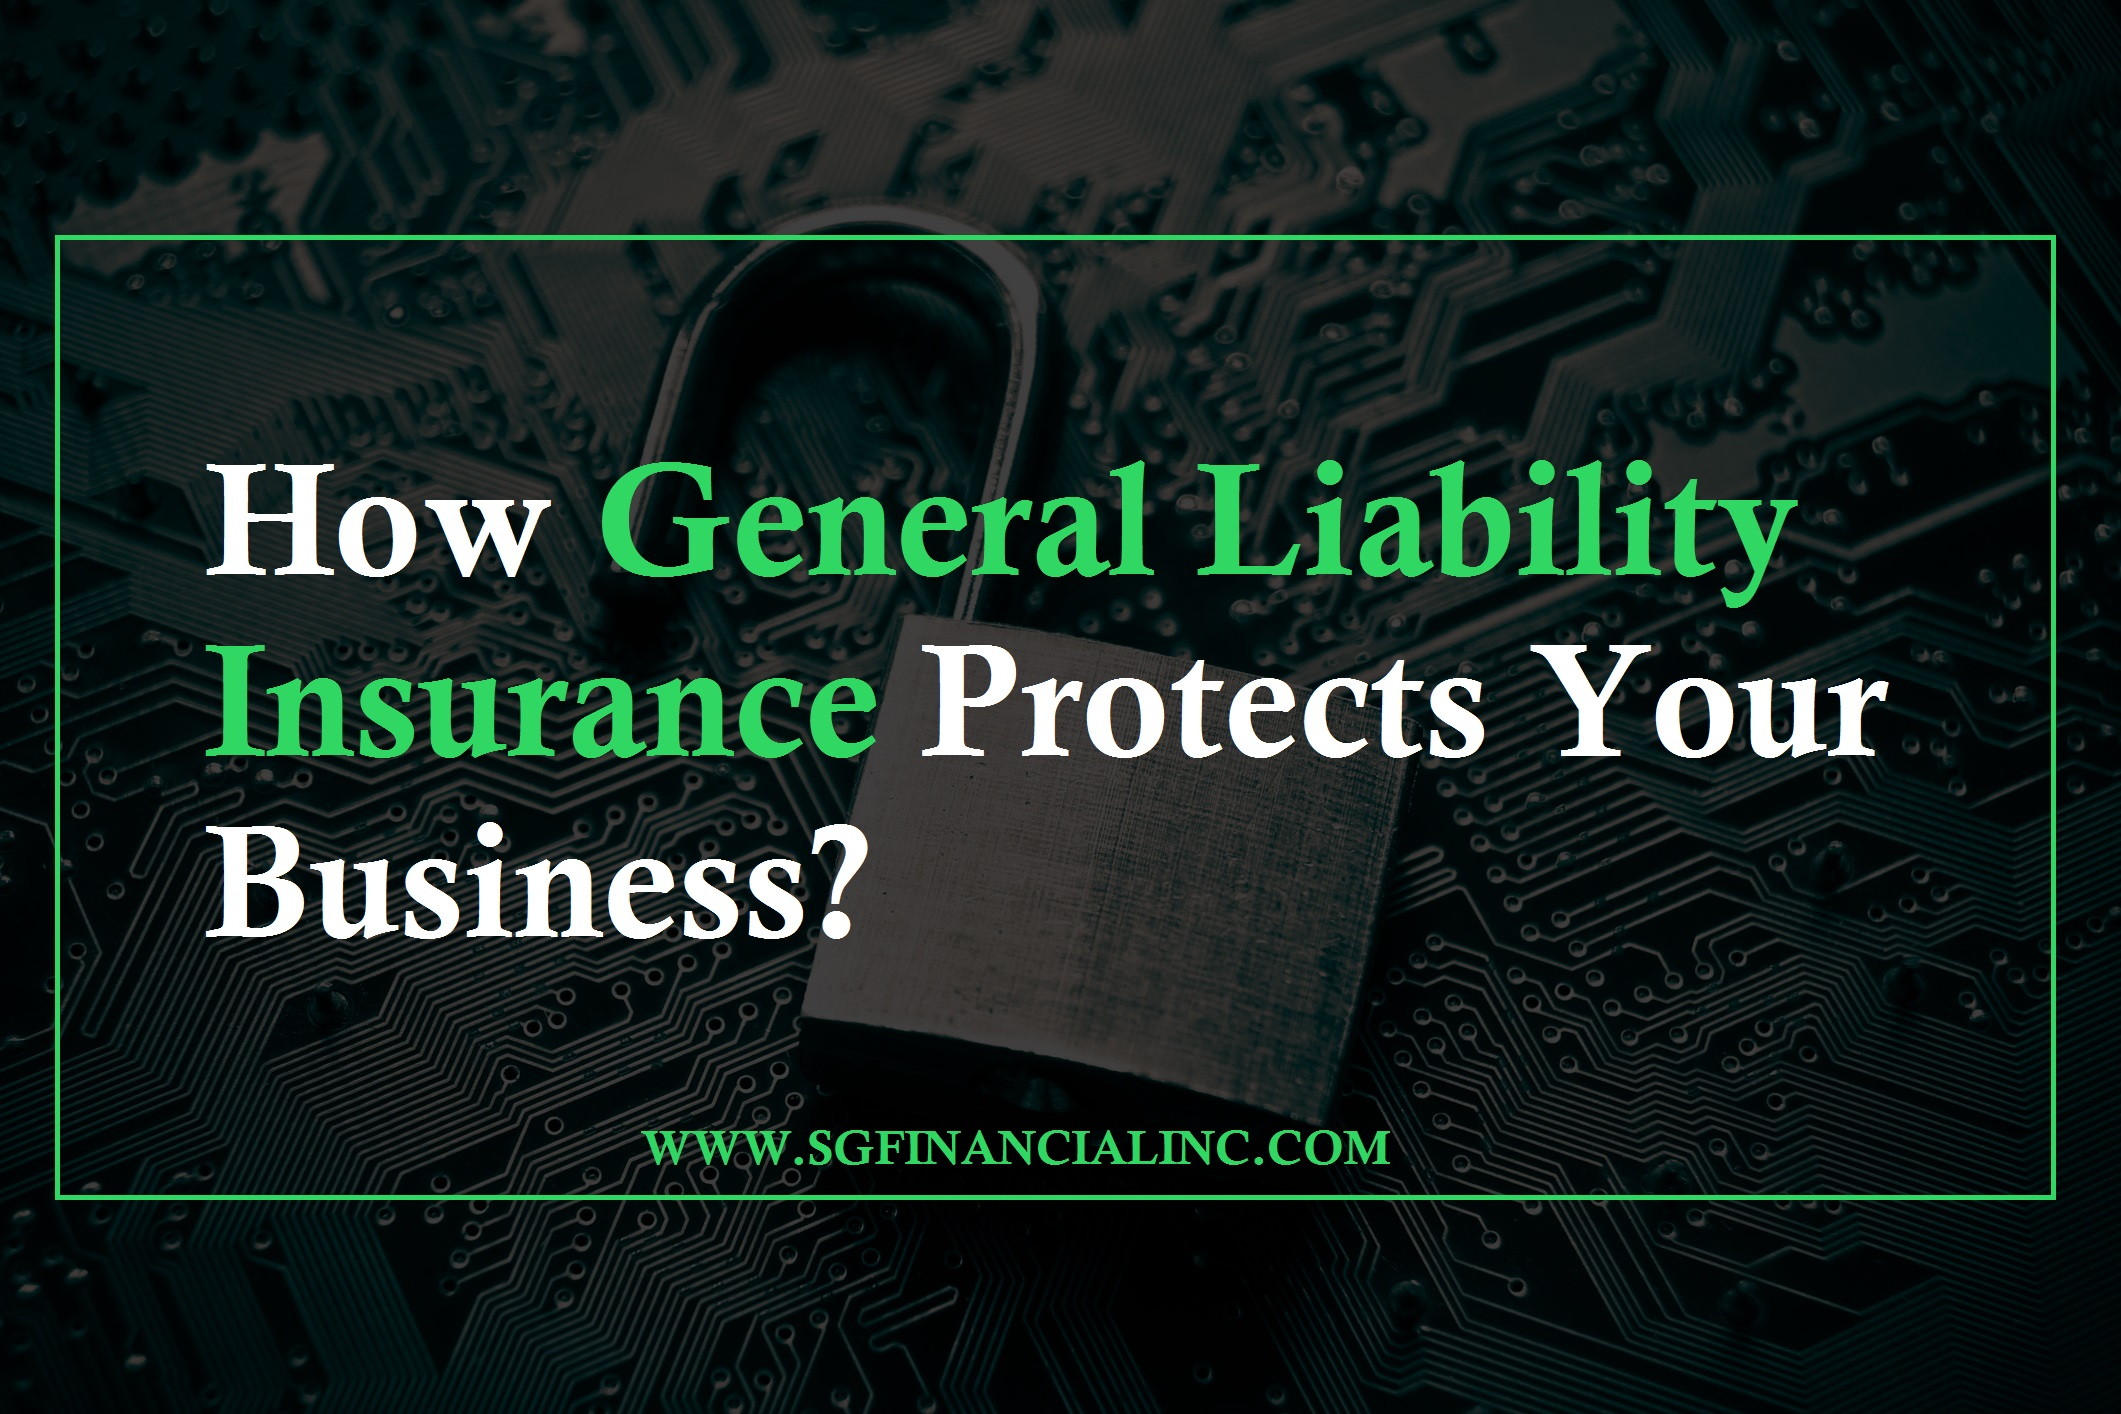 How General Liability Insurance Protects Your Business?